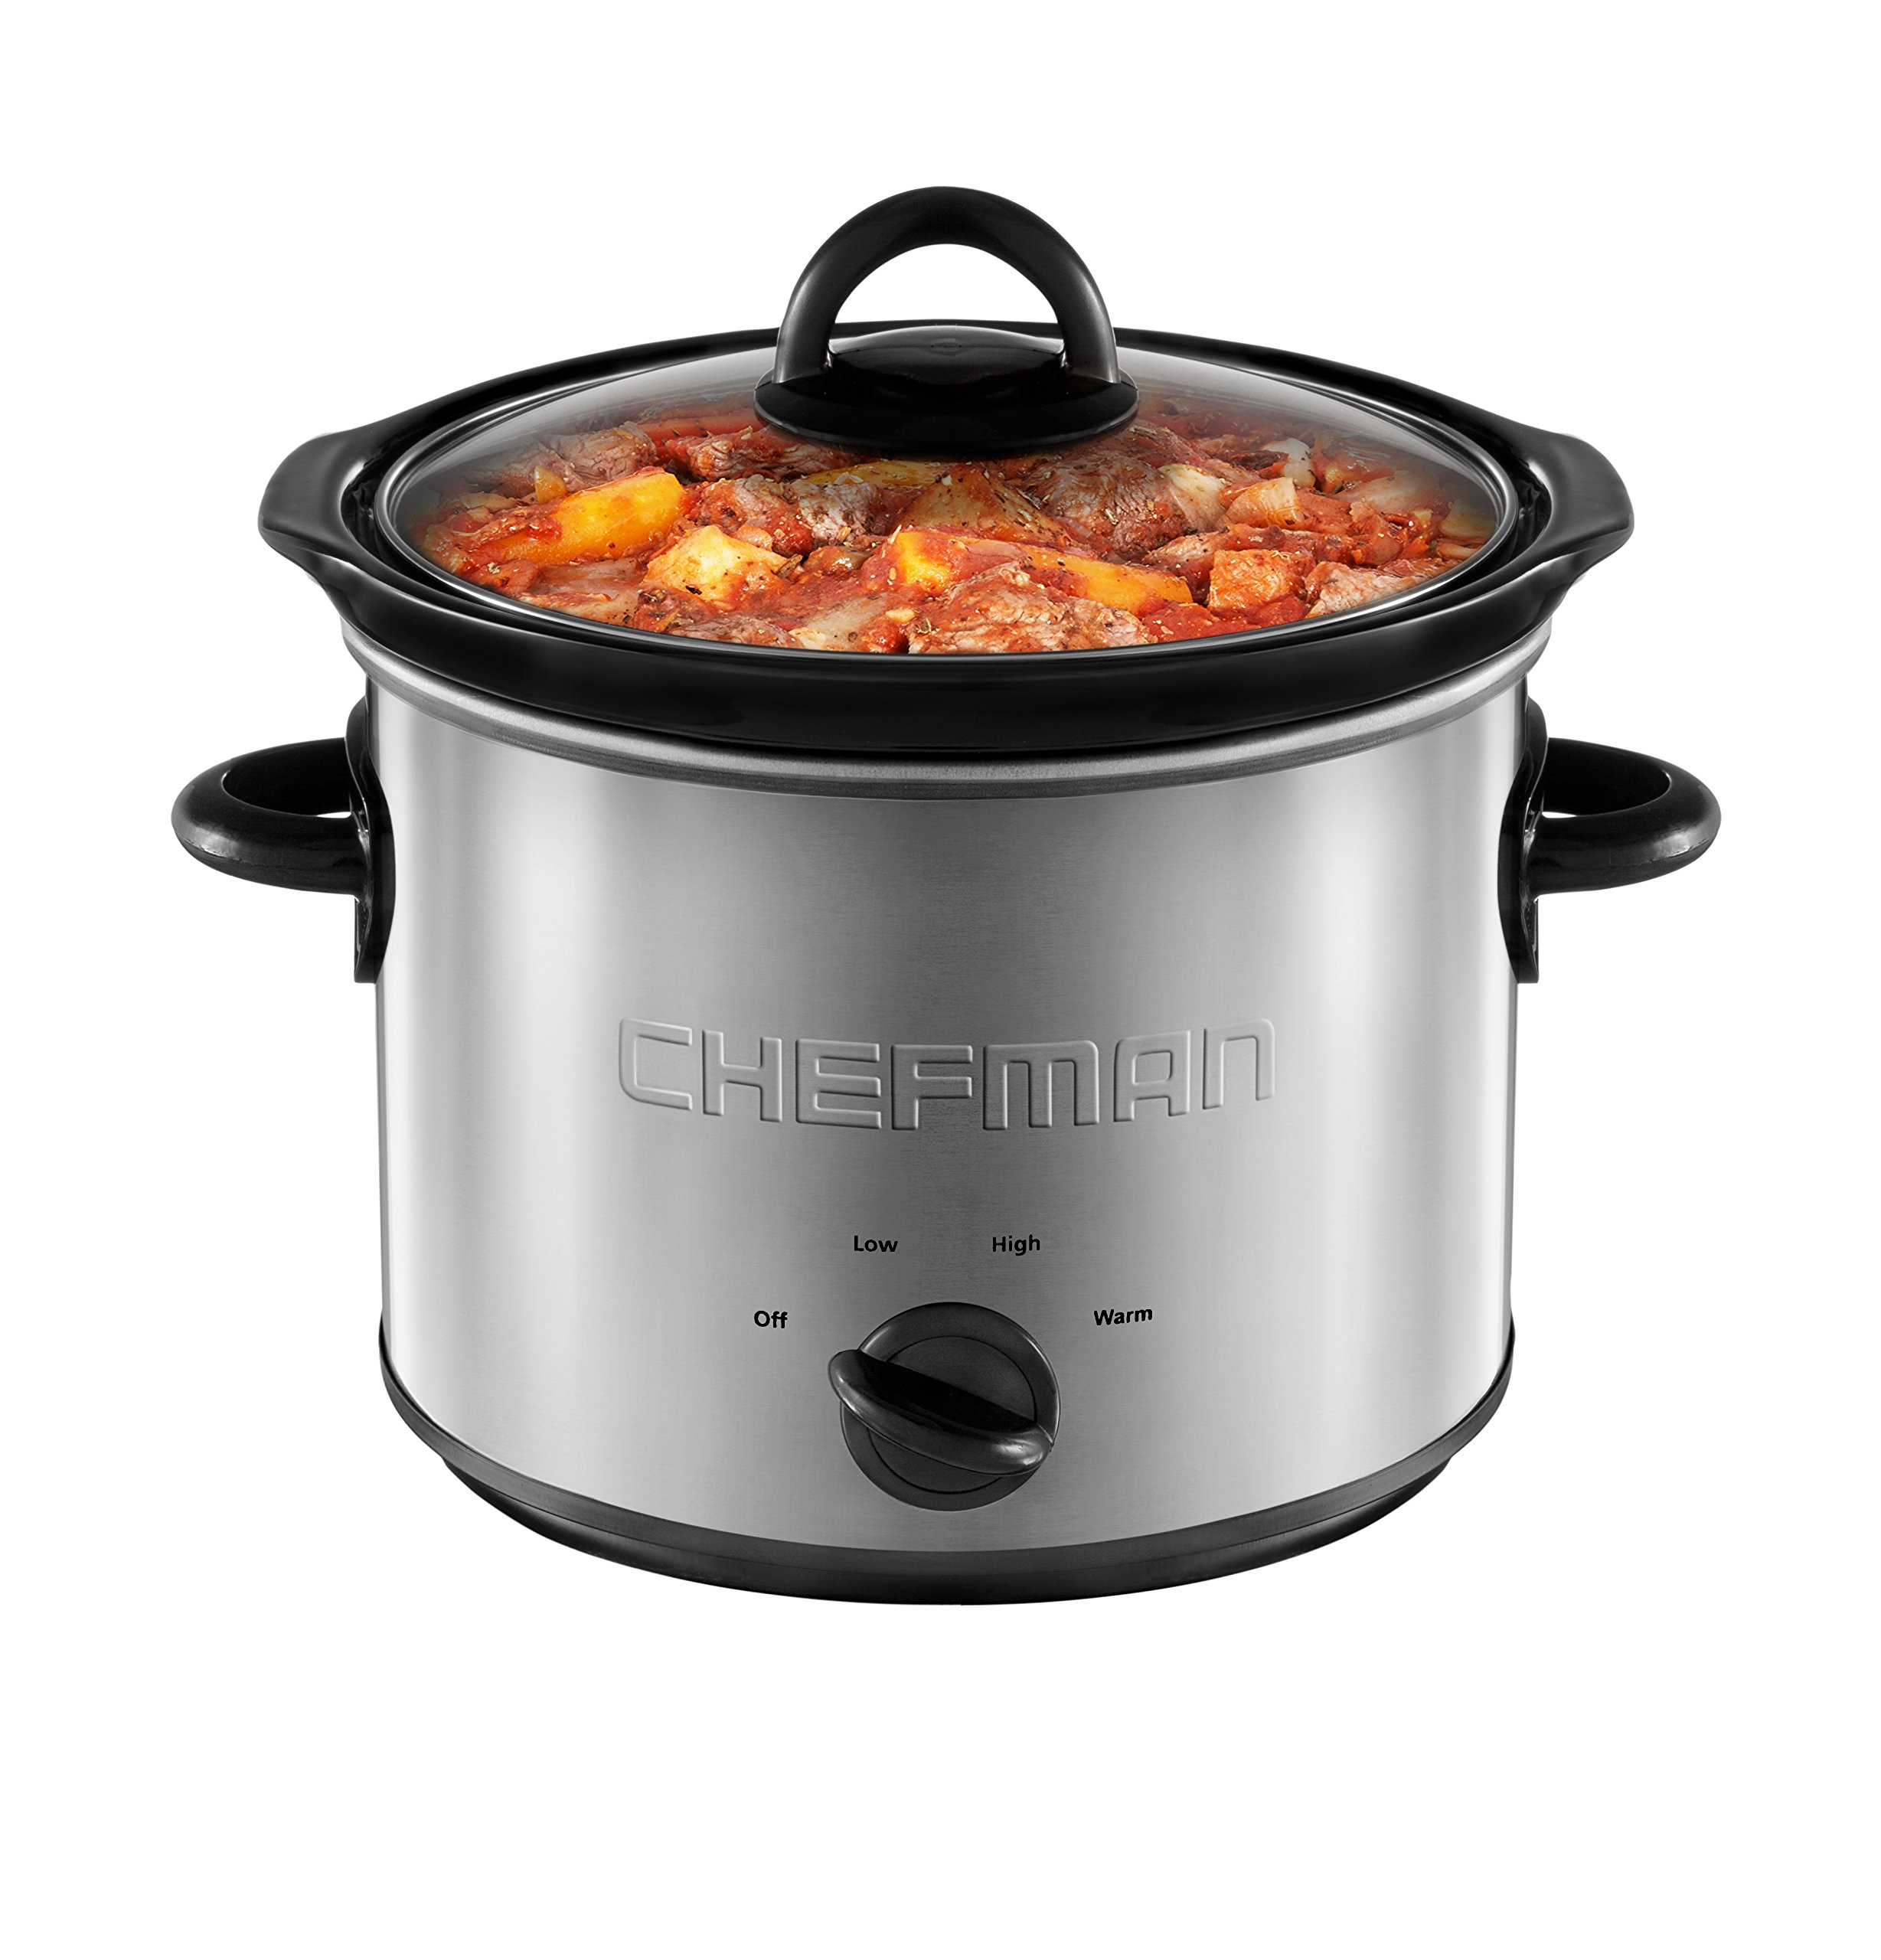 Chefman 3 Quart Slow Cooker with 3 Manual Heat Settings, Removable Crock Insert, Dishwasher Safe Stoneware & Lid, Ideal for 3+ People Fits 3 lb Roast, Stainless Steel